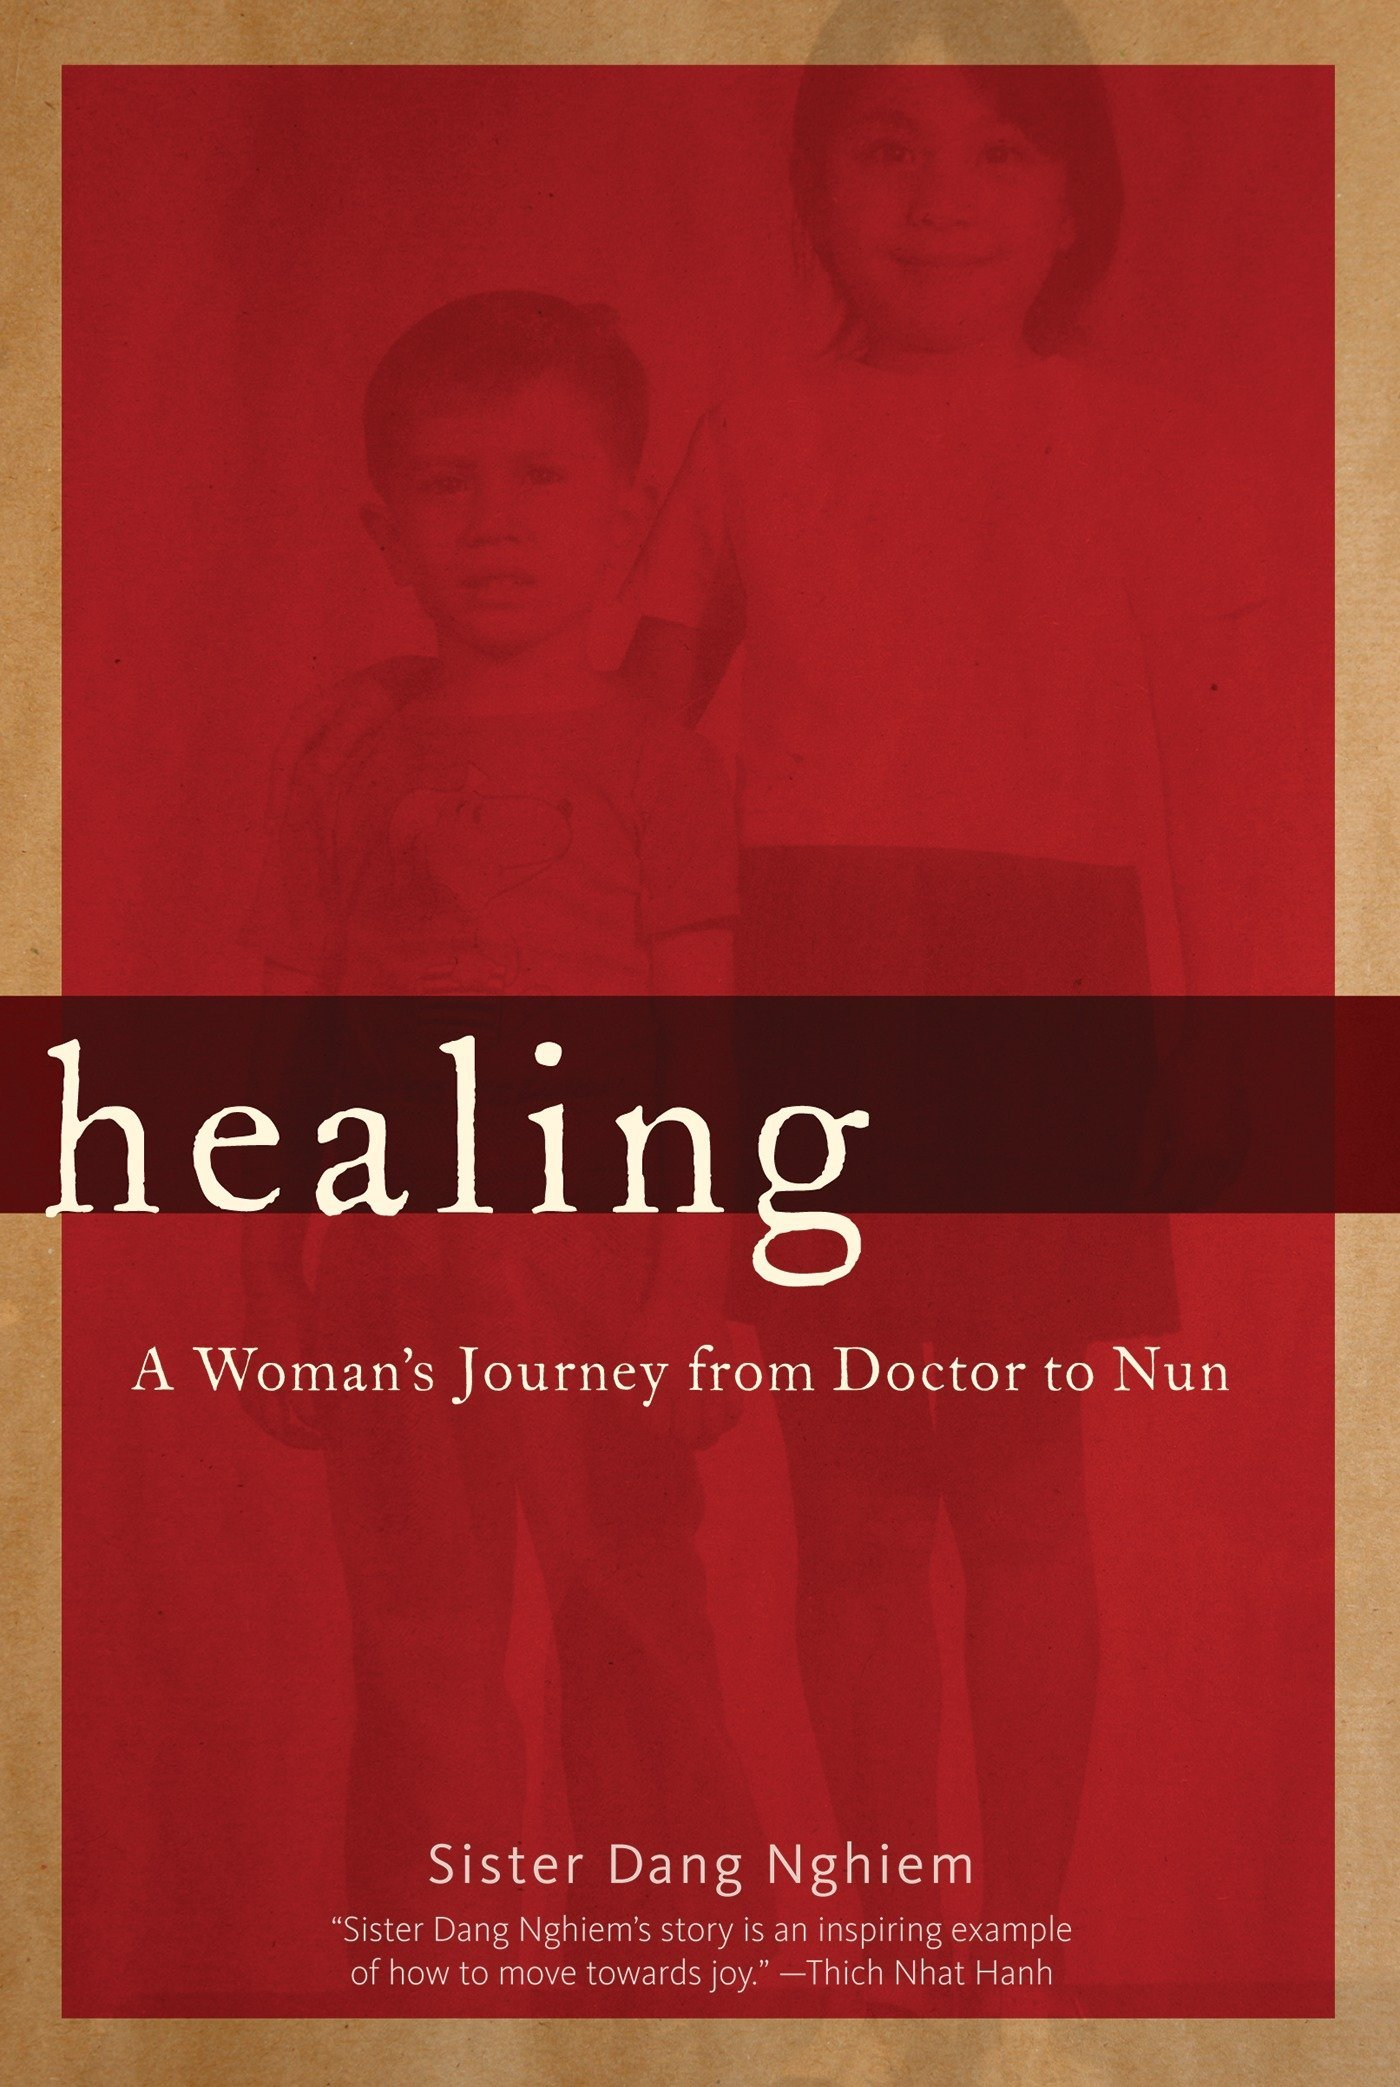 THE HEALING POWER OF OUR INNER WARMTH: Autobiography of a healing physician